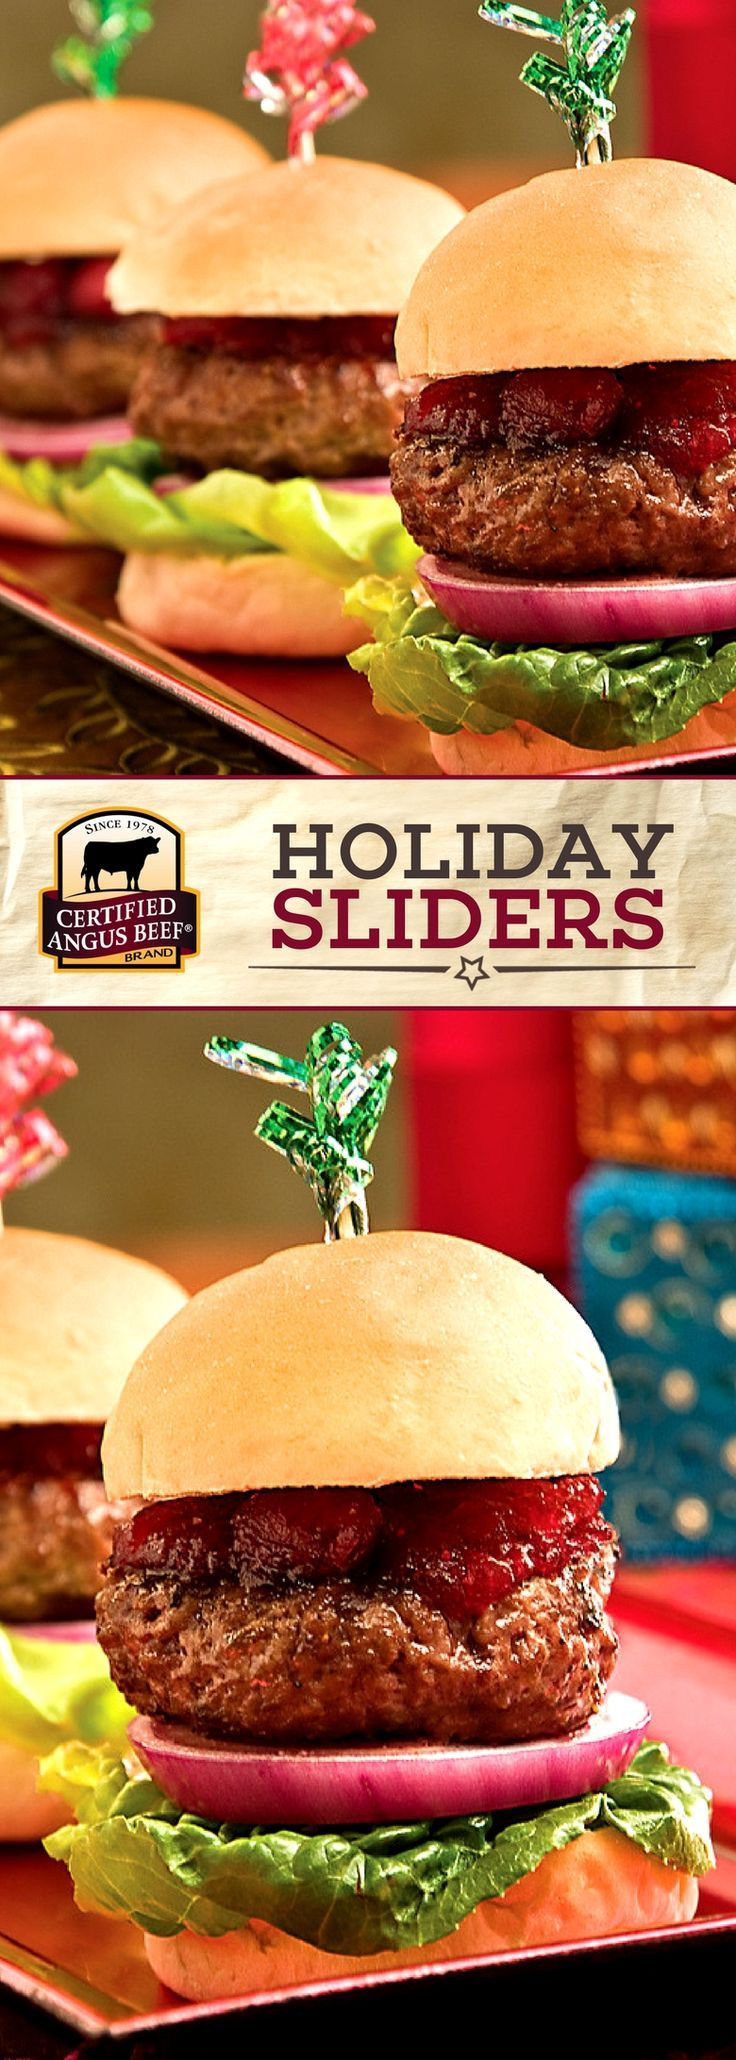 Certified Angus Beef ®️️️️️️️️️️️️️️️️️ brand SLIDER piled high with sweet cranberry relish will be the STAR of all your holiday parties and game day gatherings! Everyone will love the unique flavors in this HOLIDAY SLIDER recipe! Serve this EASY burger recipe as a party appetizer, easy football food, or a fun dinner any night of the week! #bestangusbeef #certifiedangusbeef #appetizerrecipes #roastbeef #sliderrecipe #easyrecipes #partyrecipe #gameday